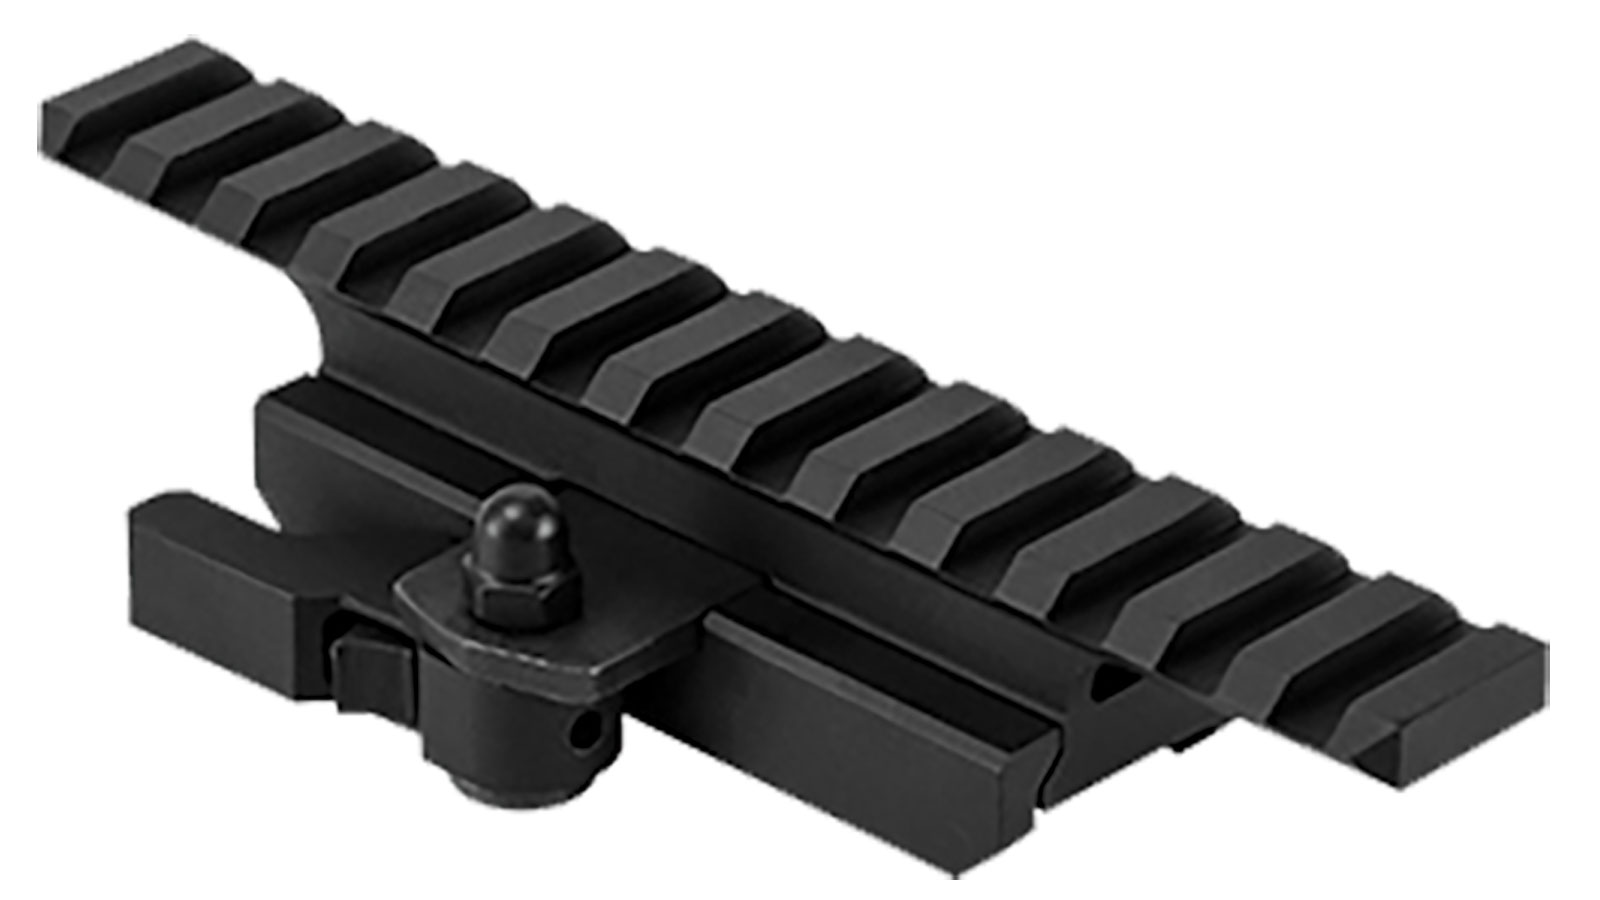 NCStar MARFQV2 Riser For AR-15 1-Piece Style Black Finish